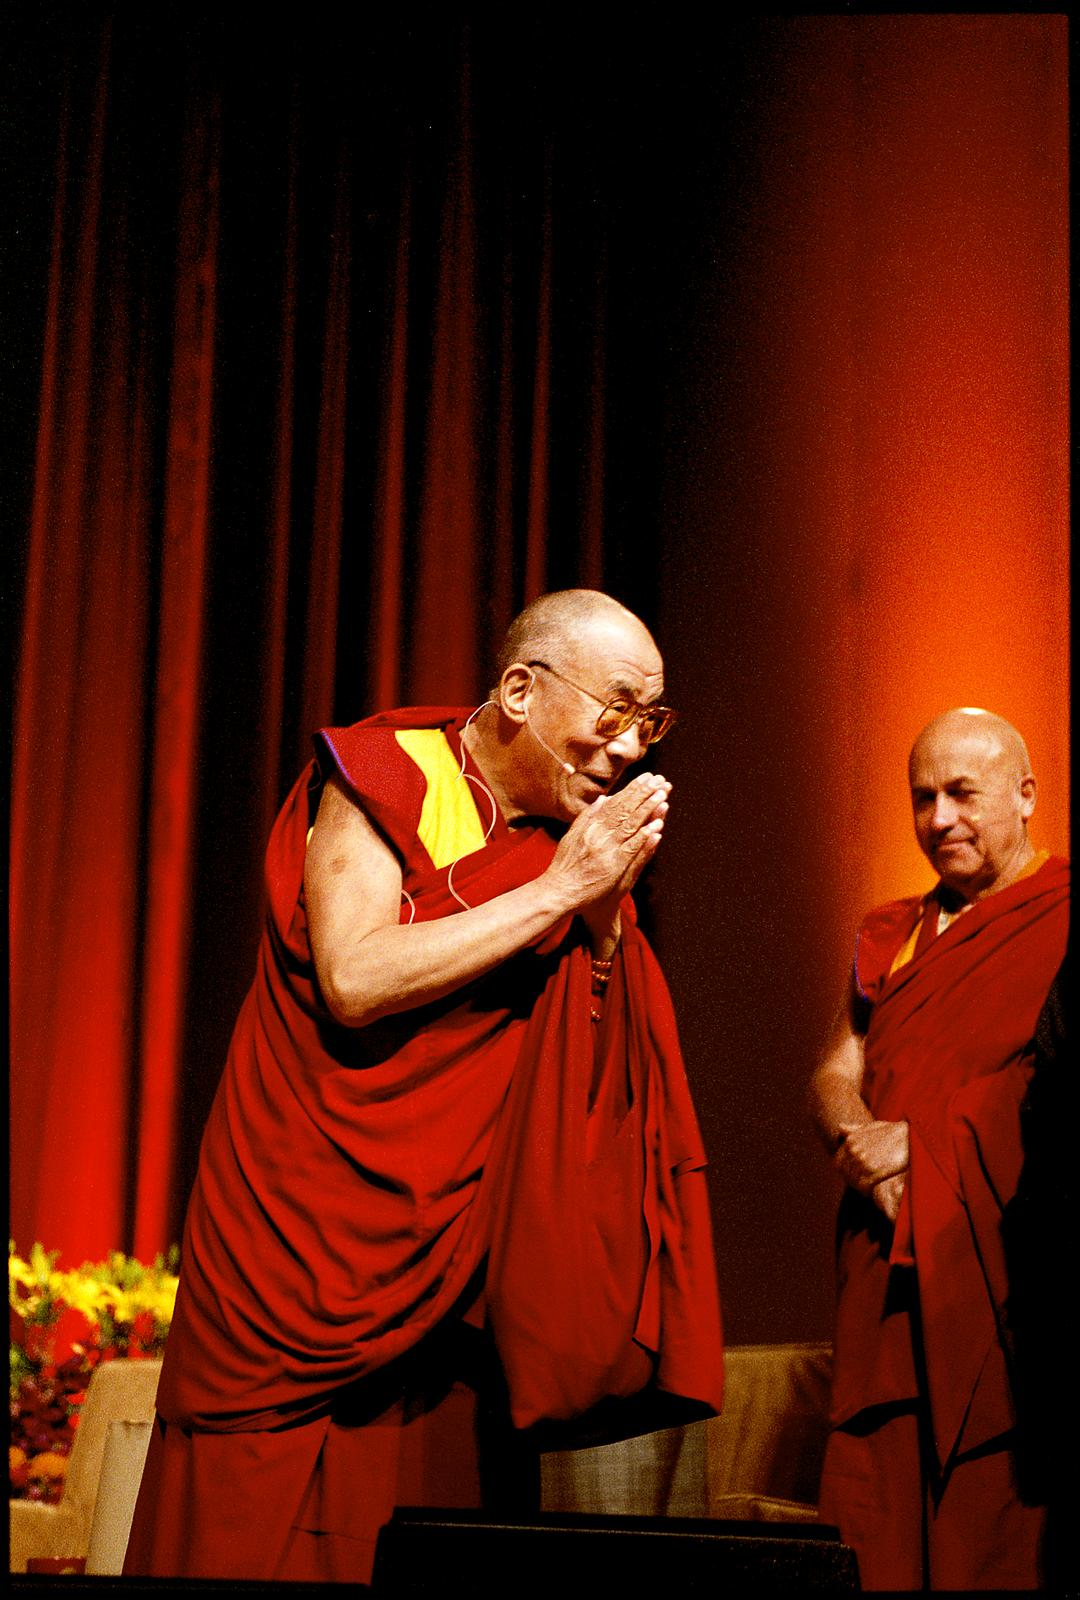 HH_Dalai_Lama_024_Preview